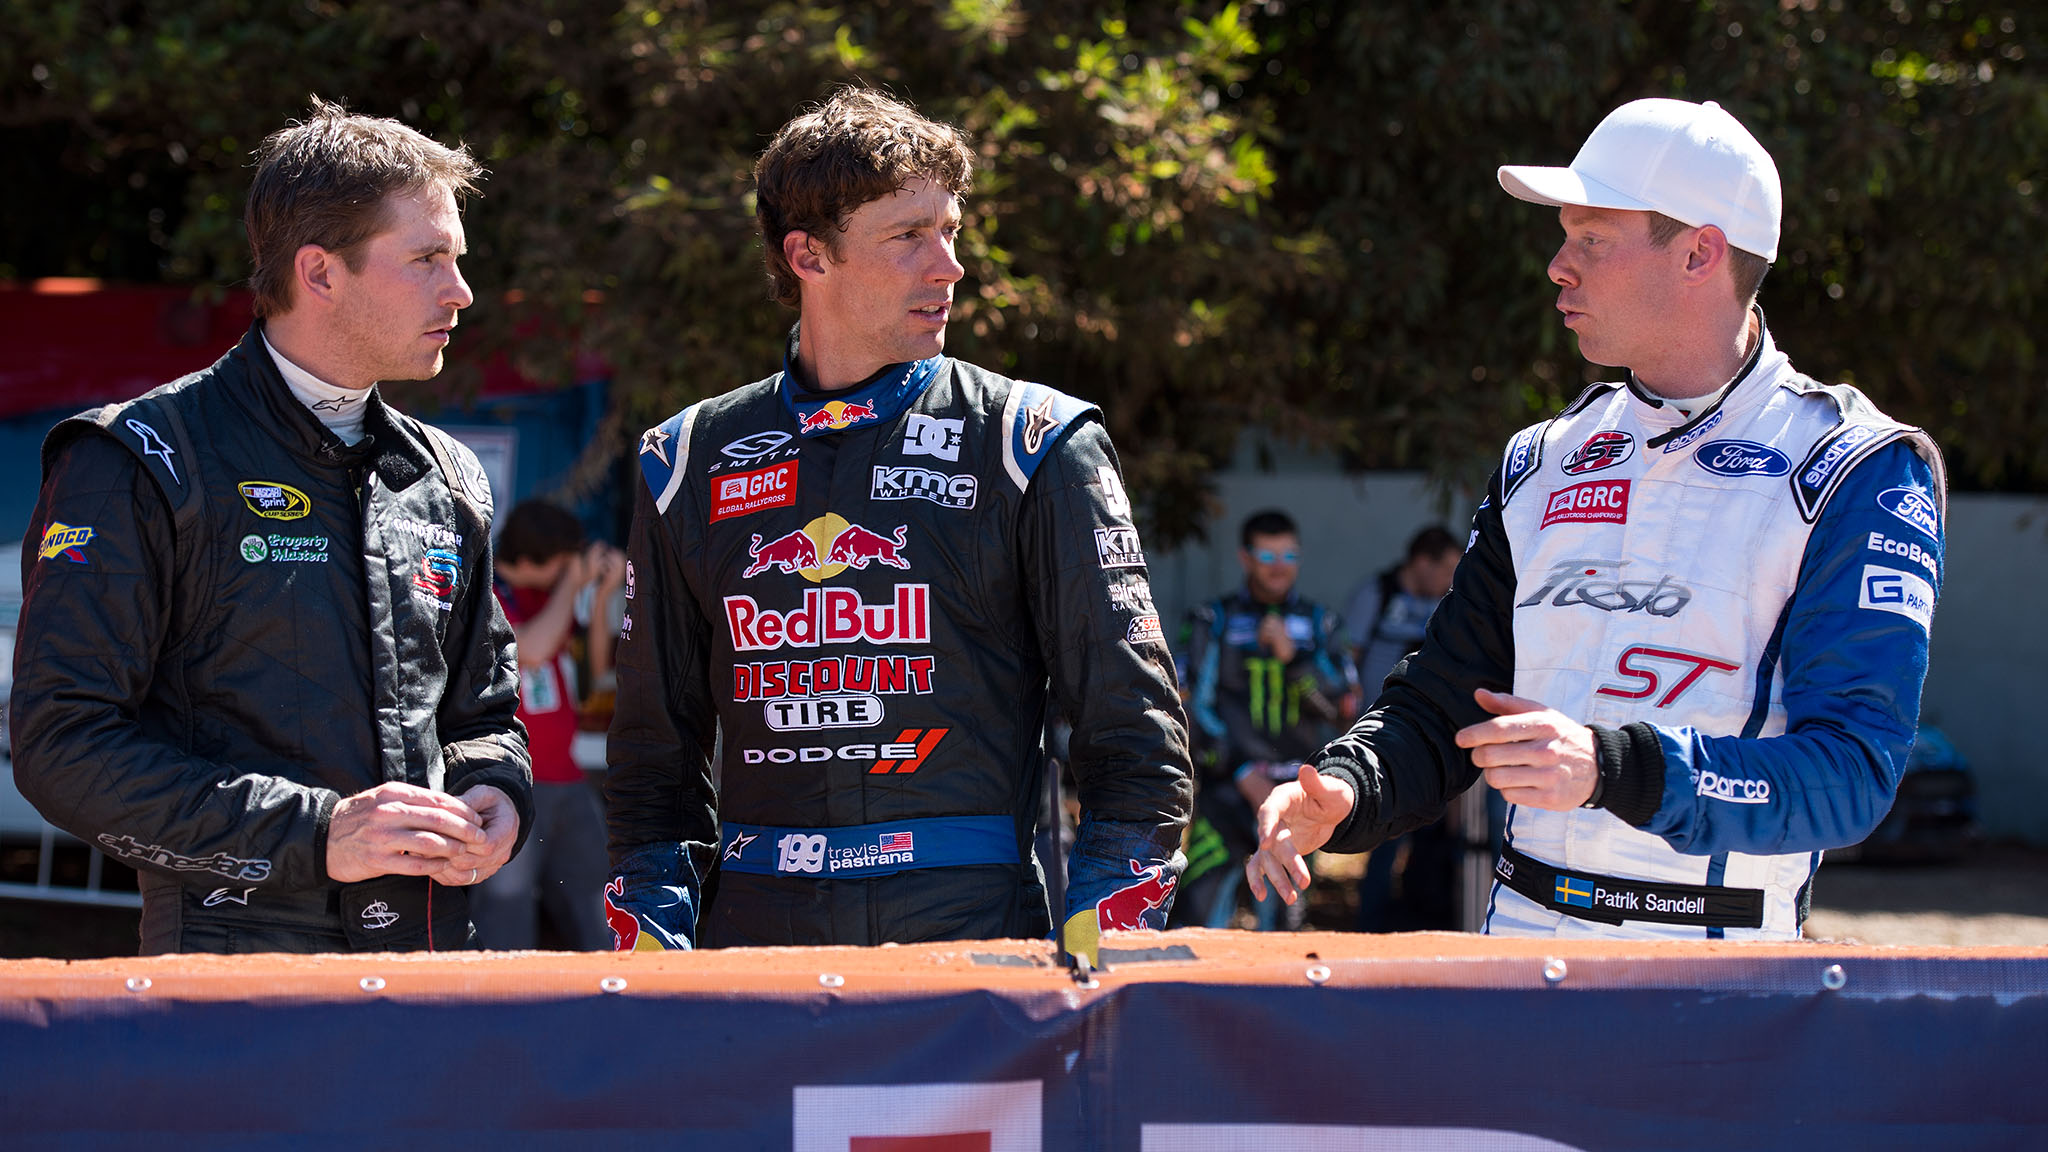 Scott Speed, Travis Pastrana, Patrik Sandell